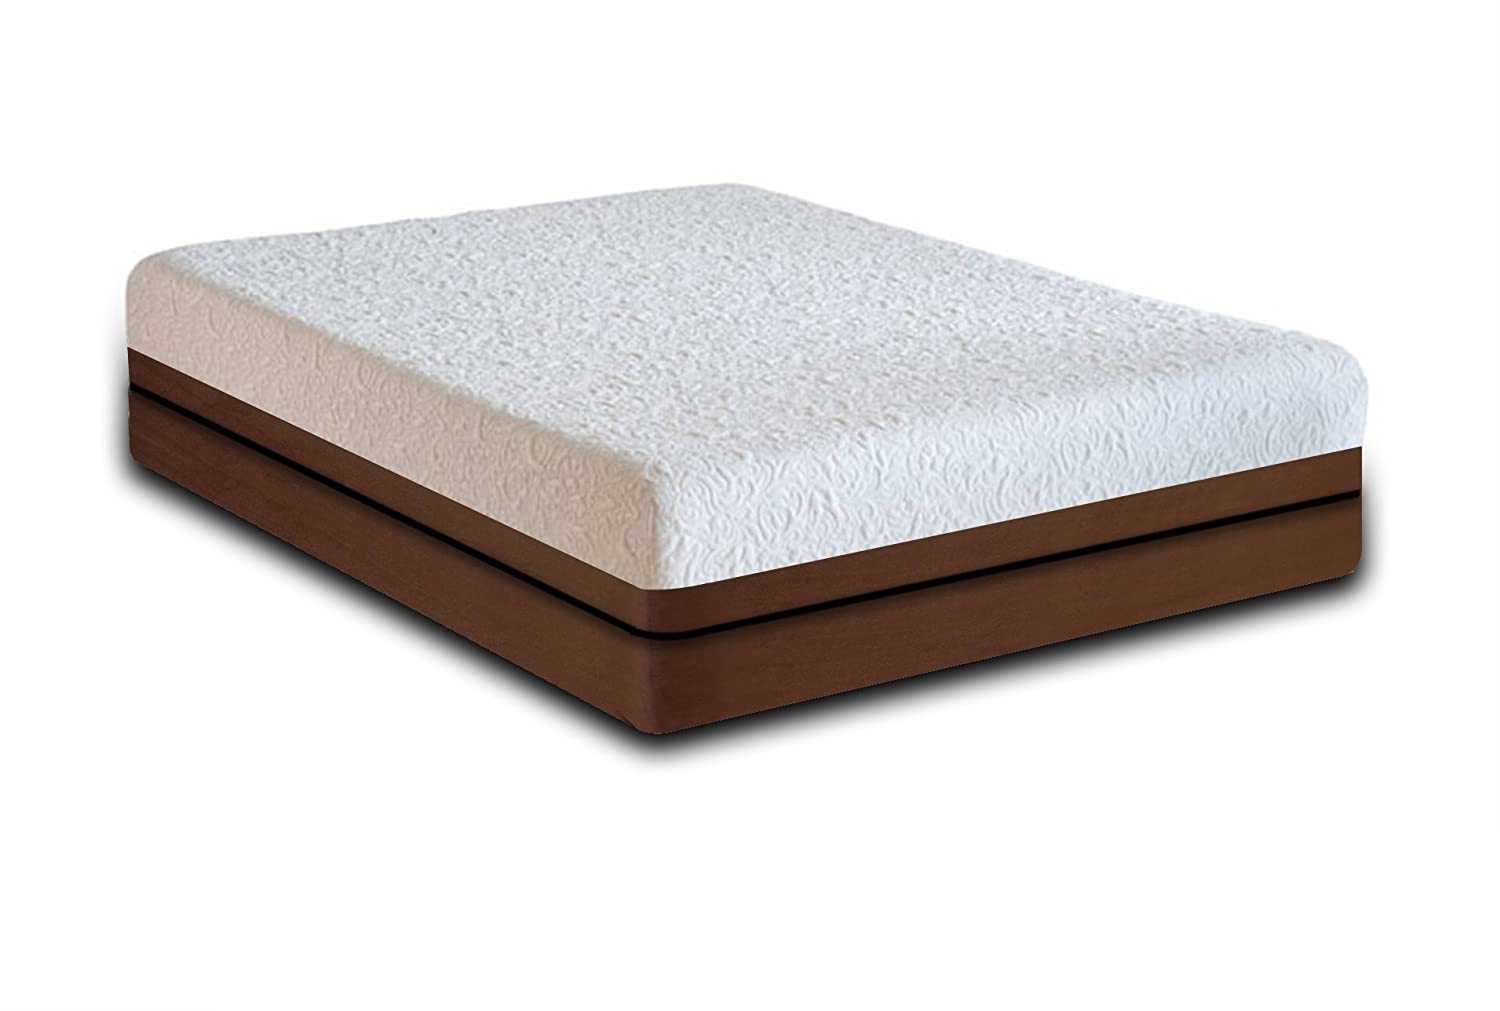 404 squidoo page not found Where to buy mattress foam